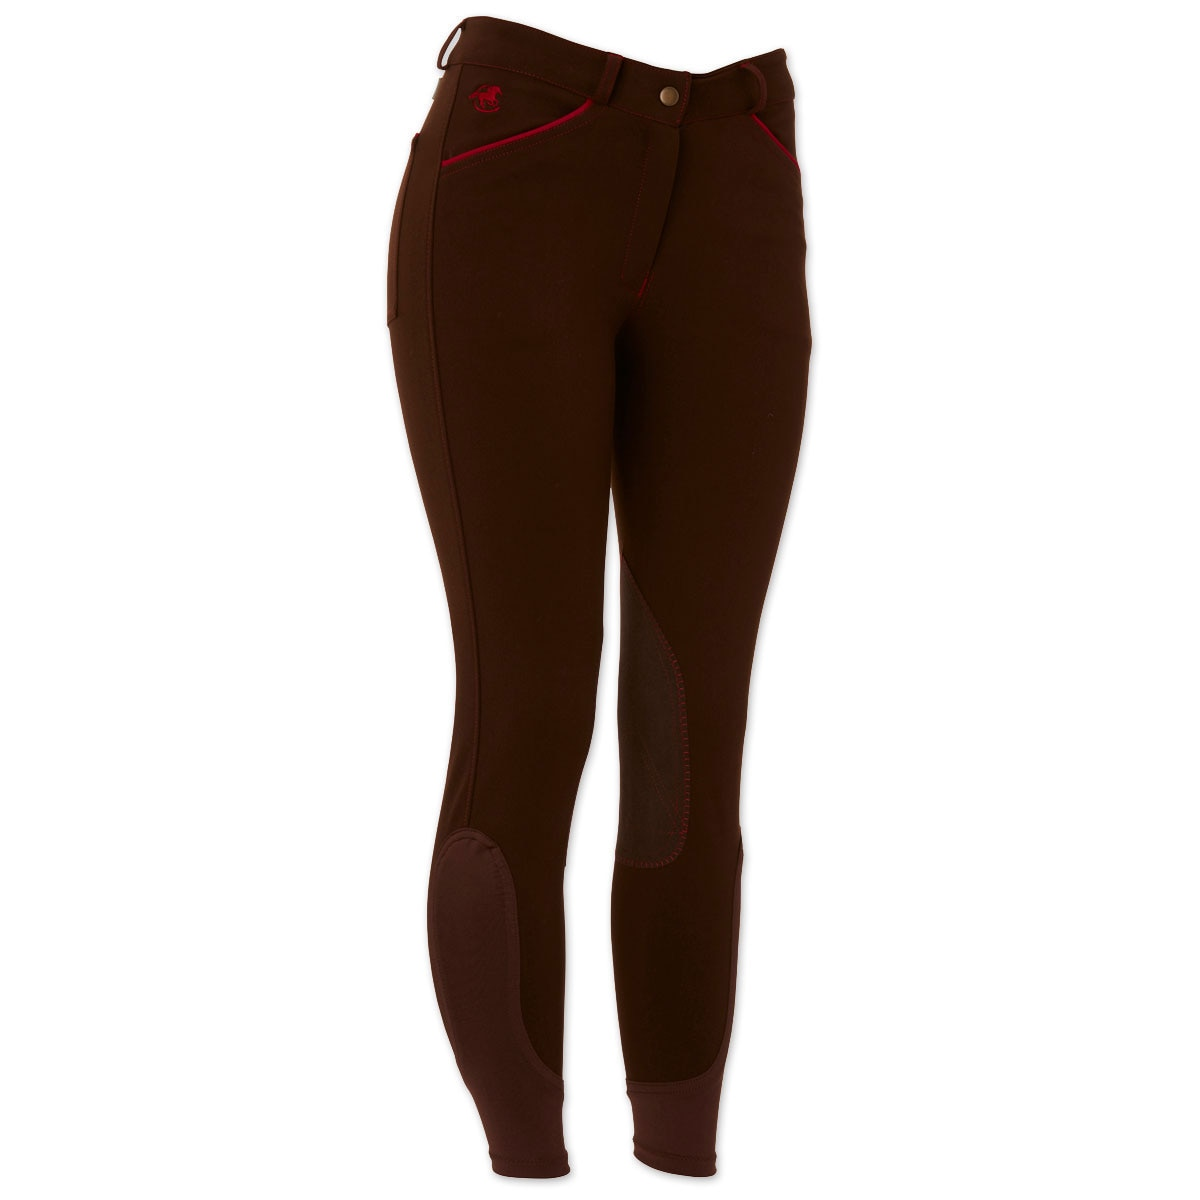 Piper Breeches by SmartPak - Mid-Rise Knee Patch- Sale!